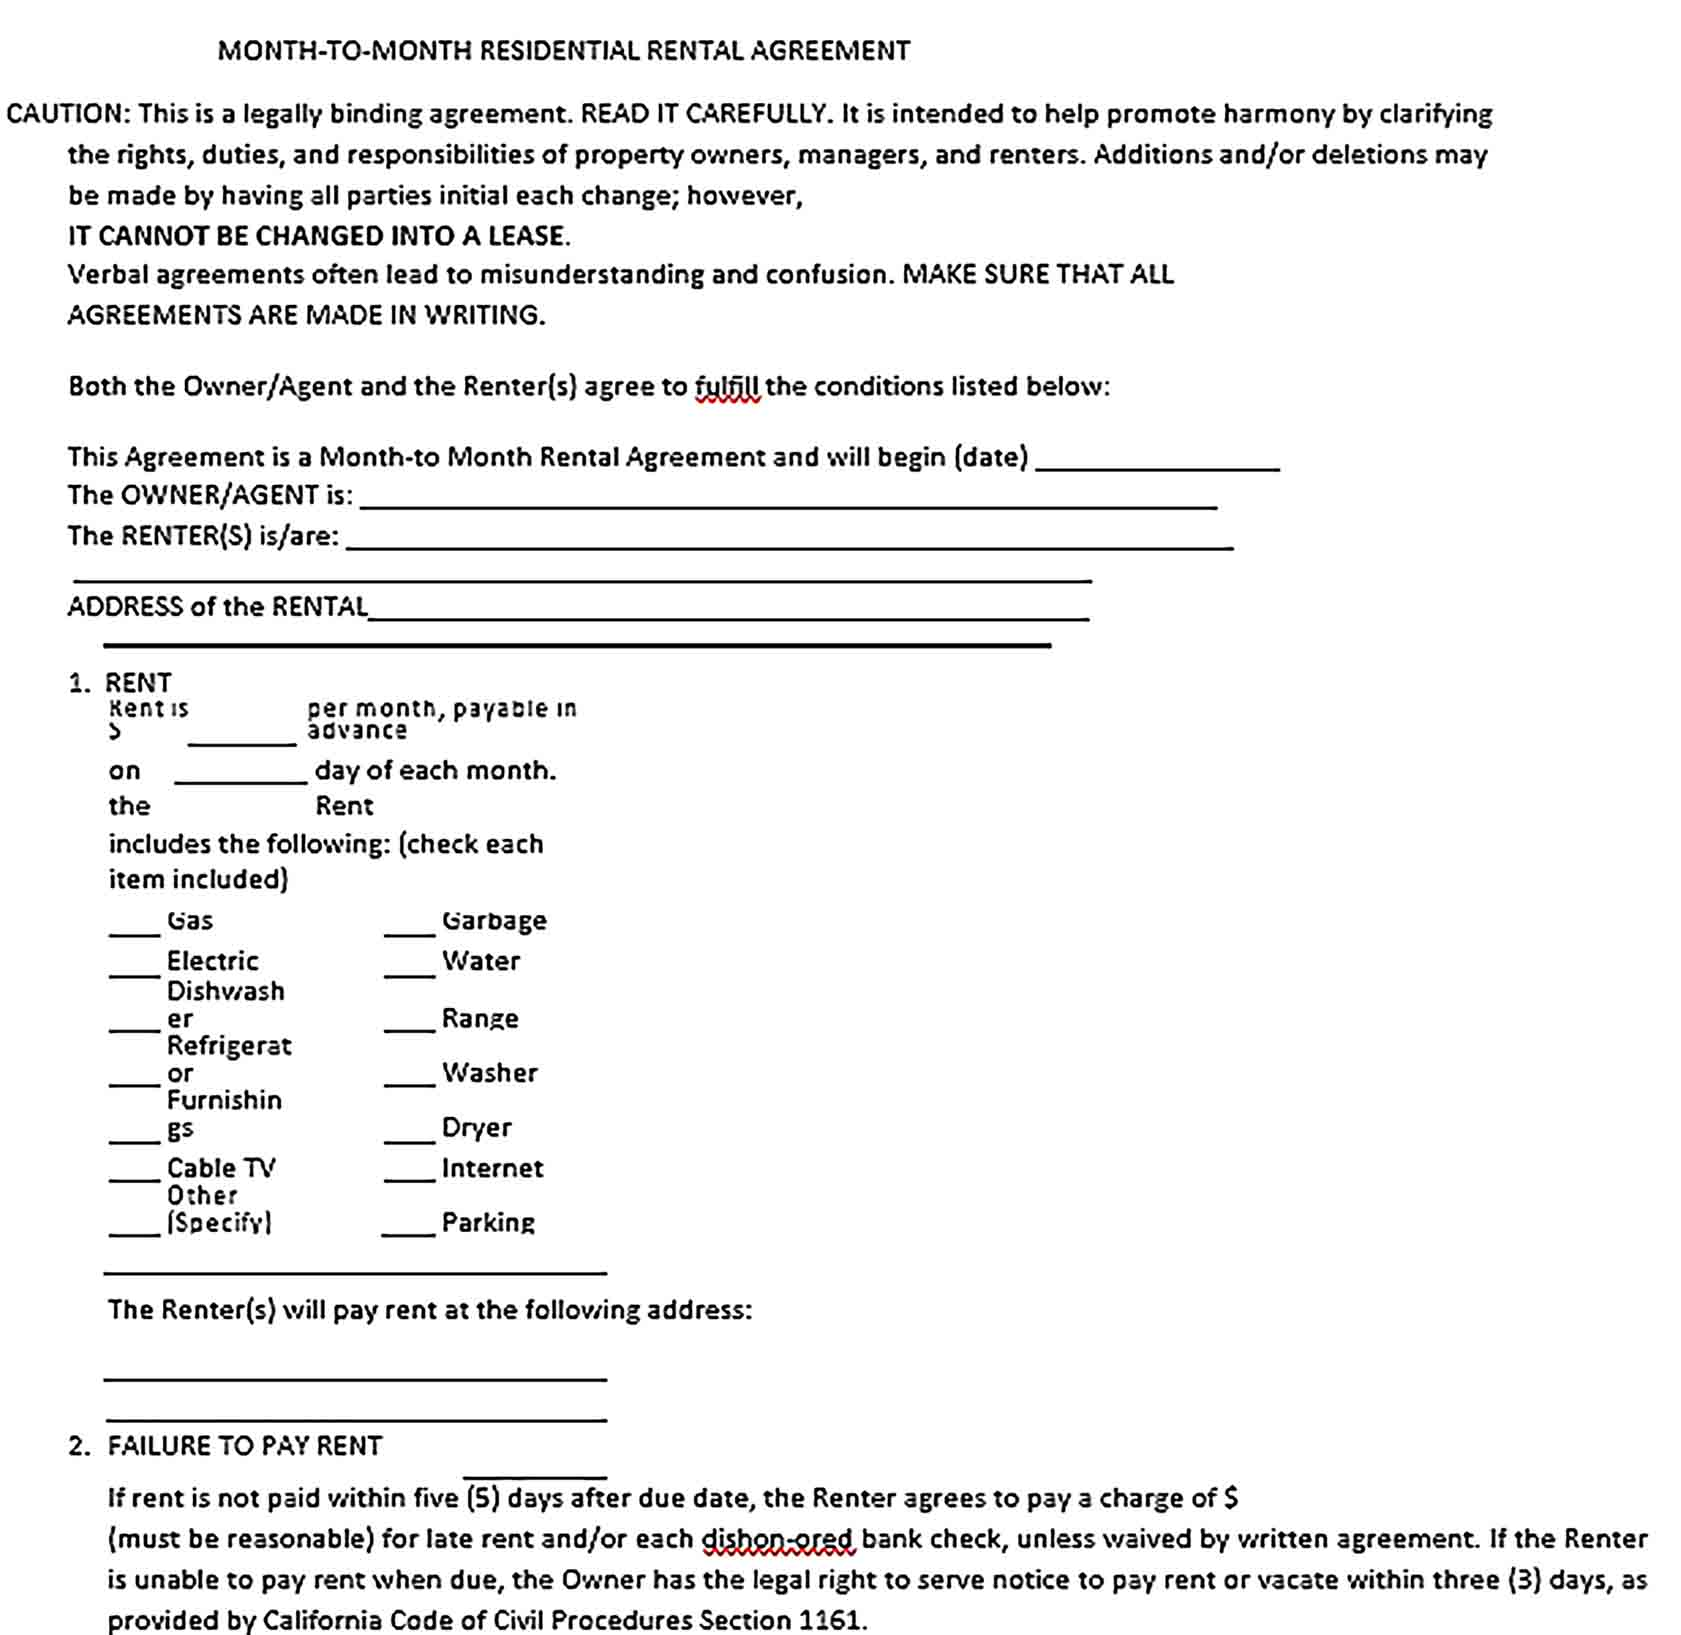 Sample Month to Month Rental Agreement